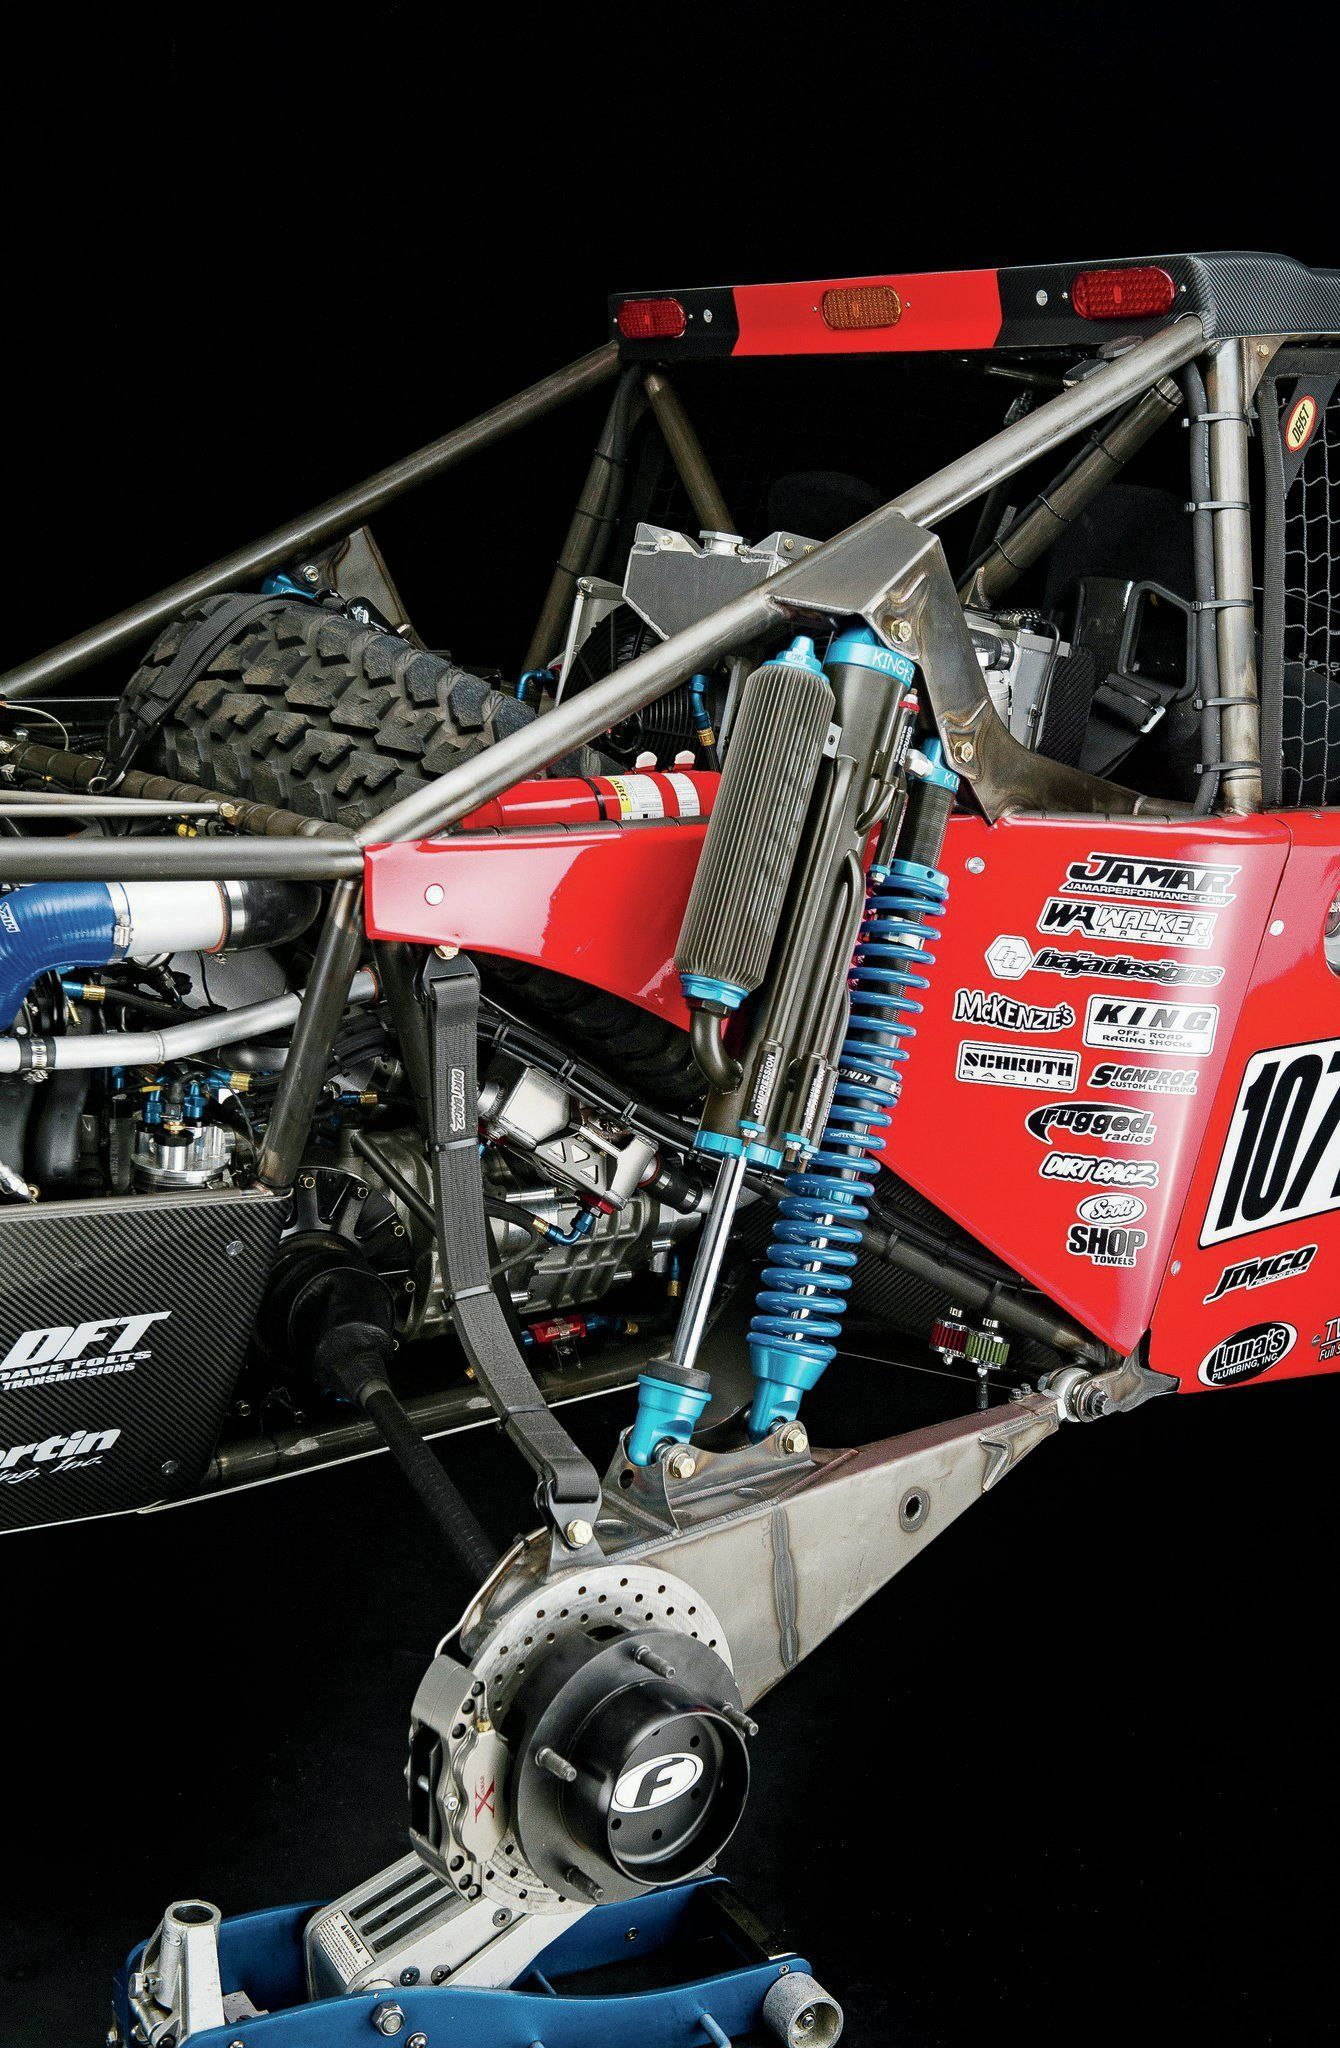 Rear King Coilover And Bypass Shock Trophy truck, Race